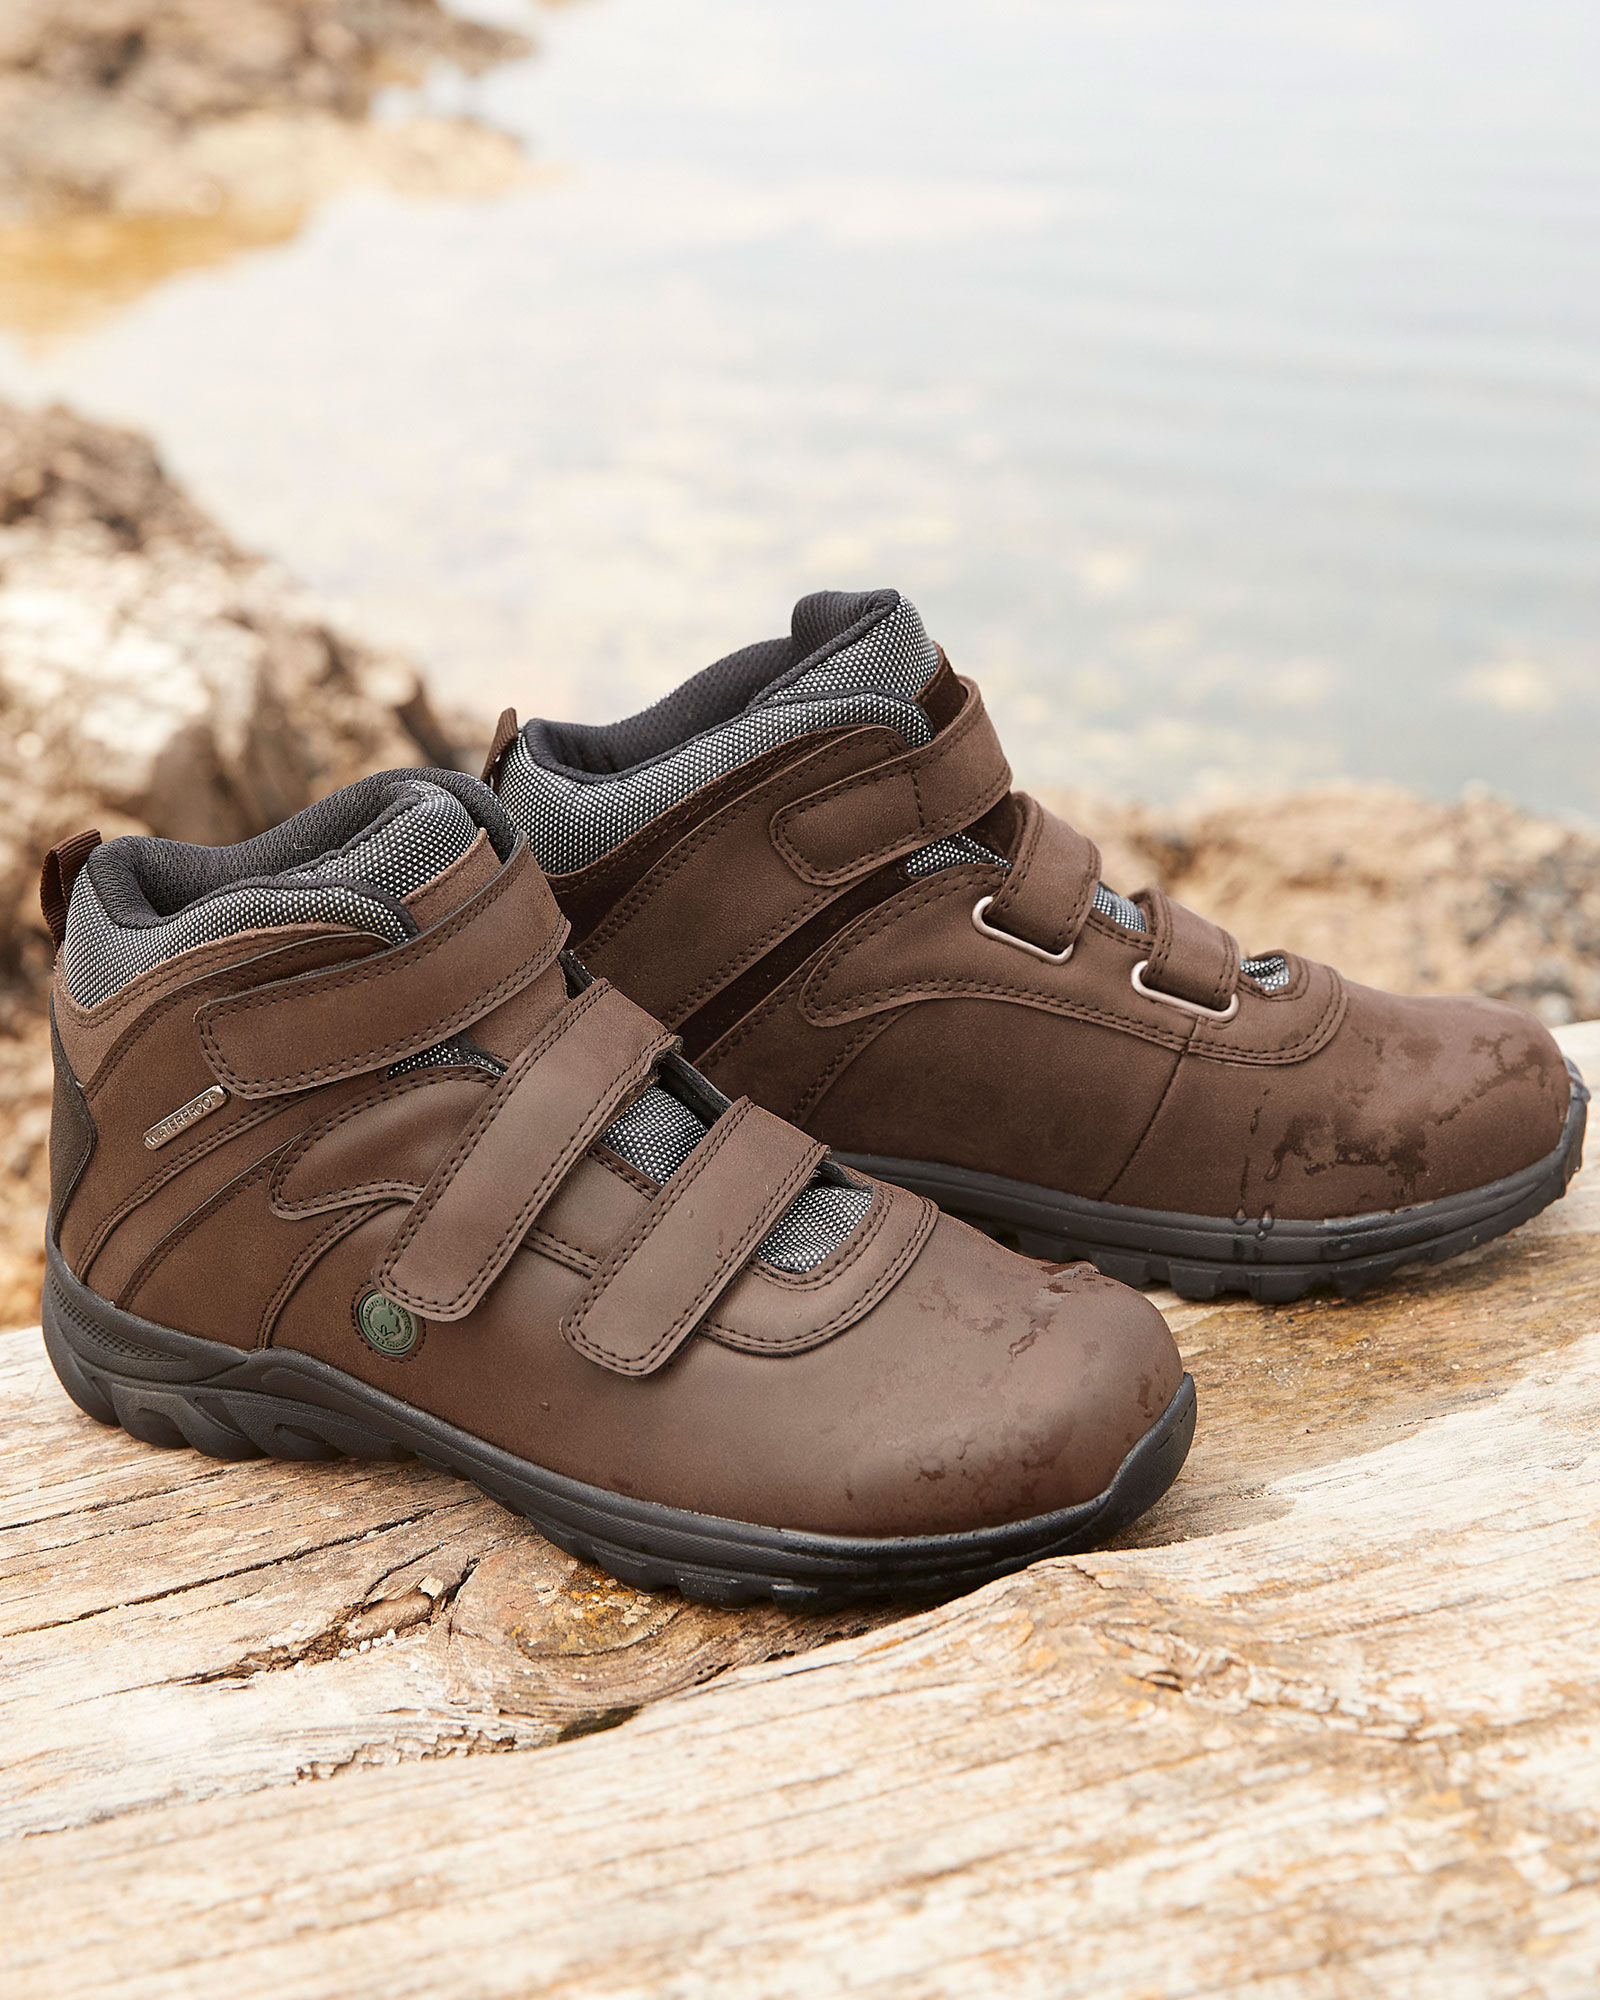 Waterproof Adjustable Walking Boots at